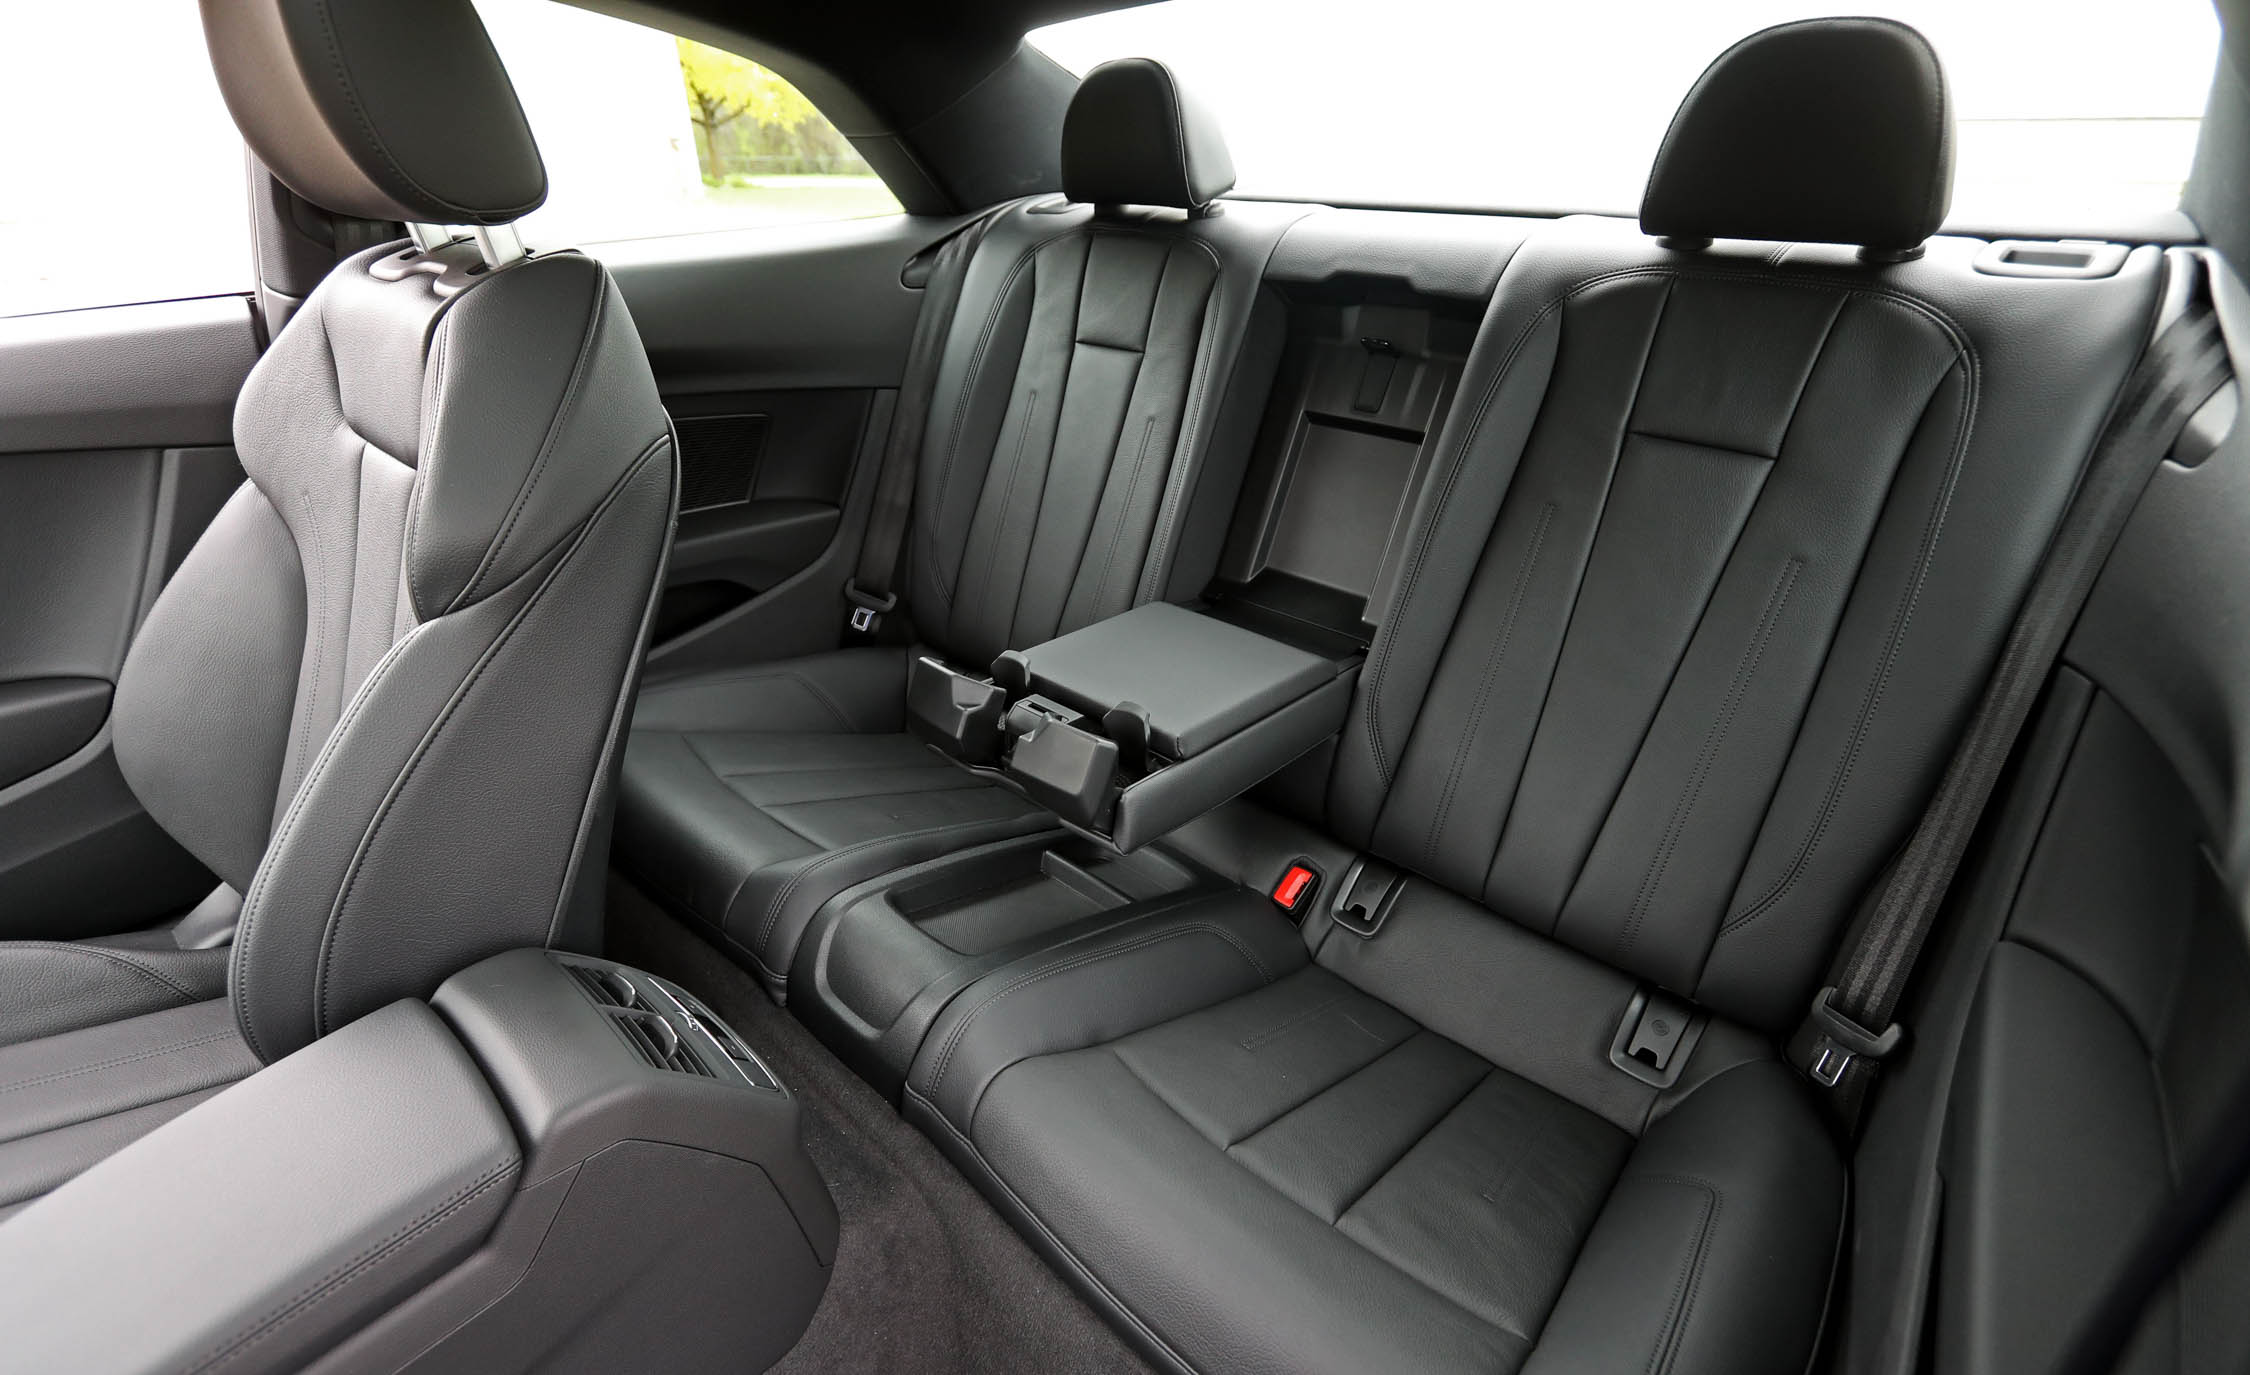 2018 Audi A5 Coupe Interior Seats Rear Armrest (Photo 21 of 50)